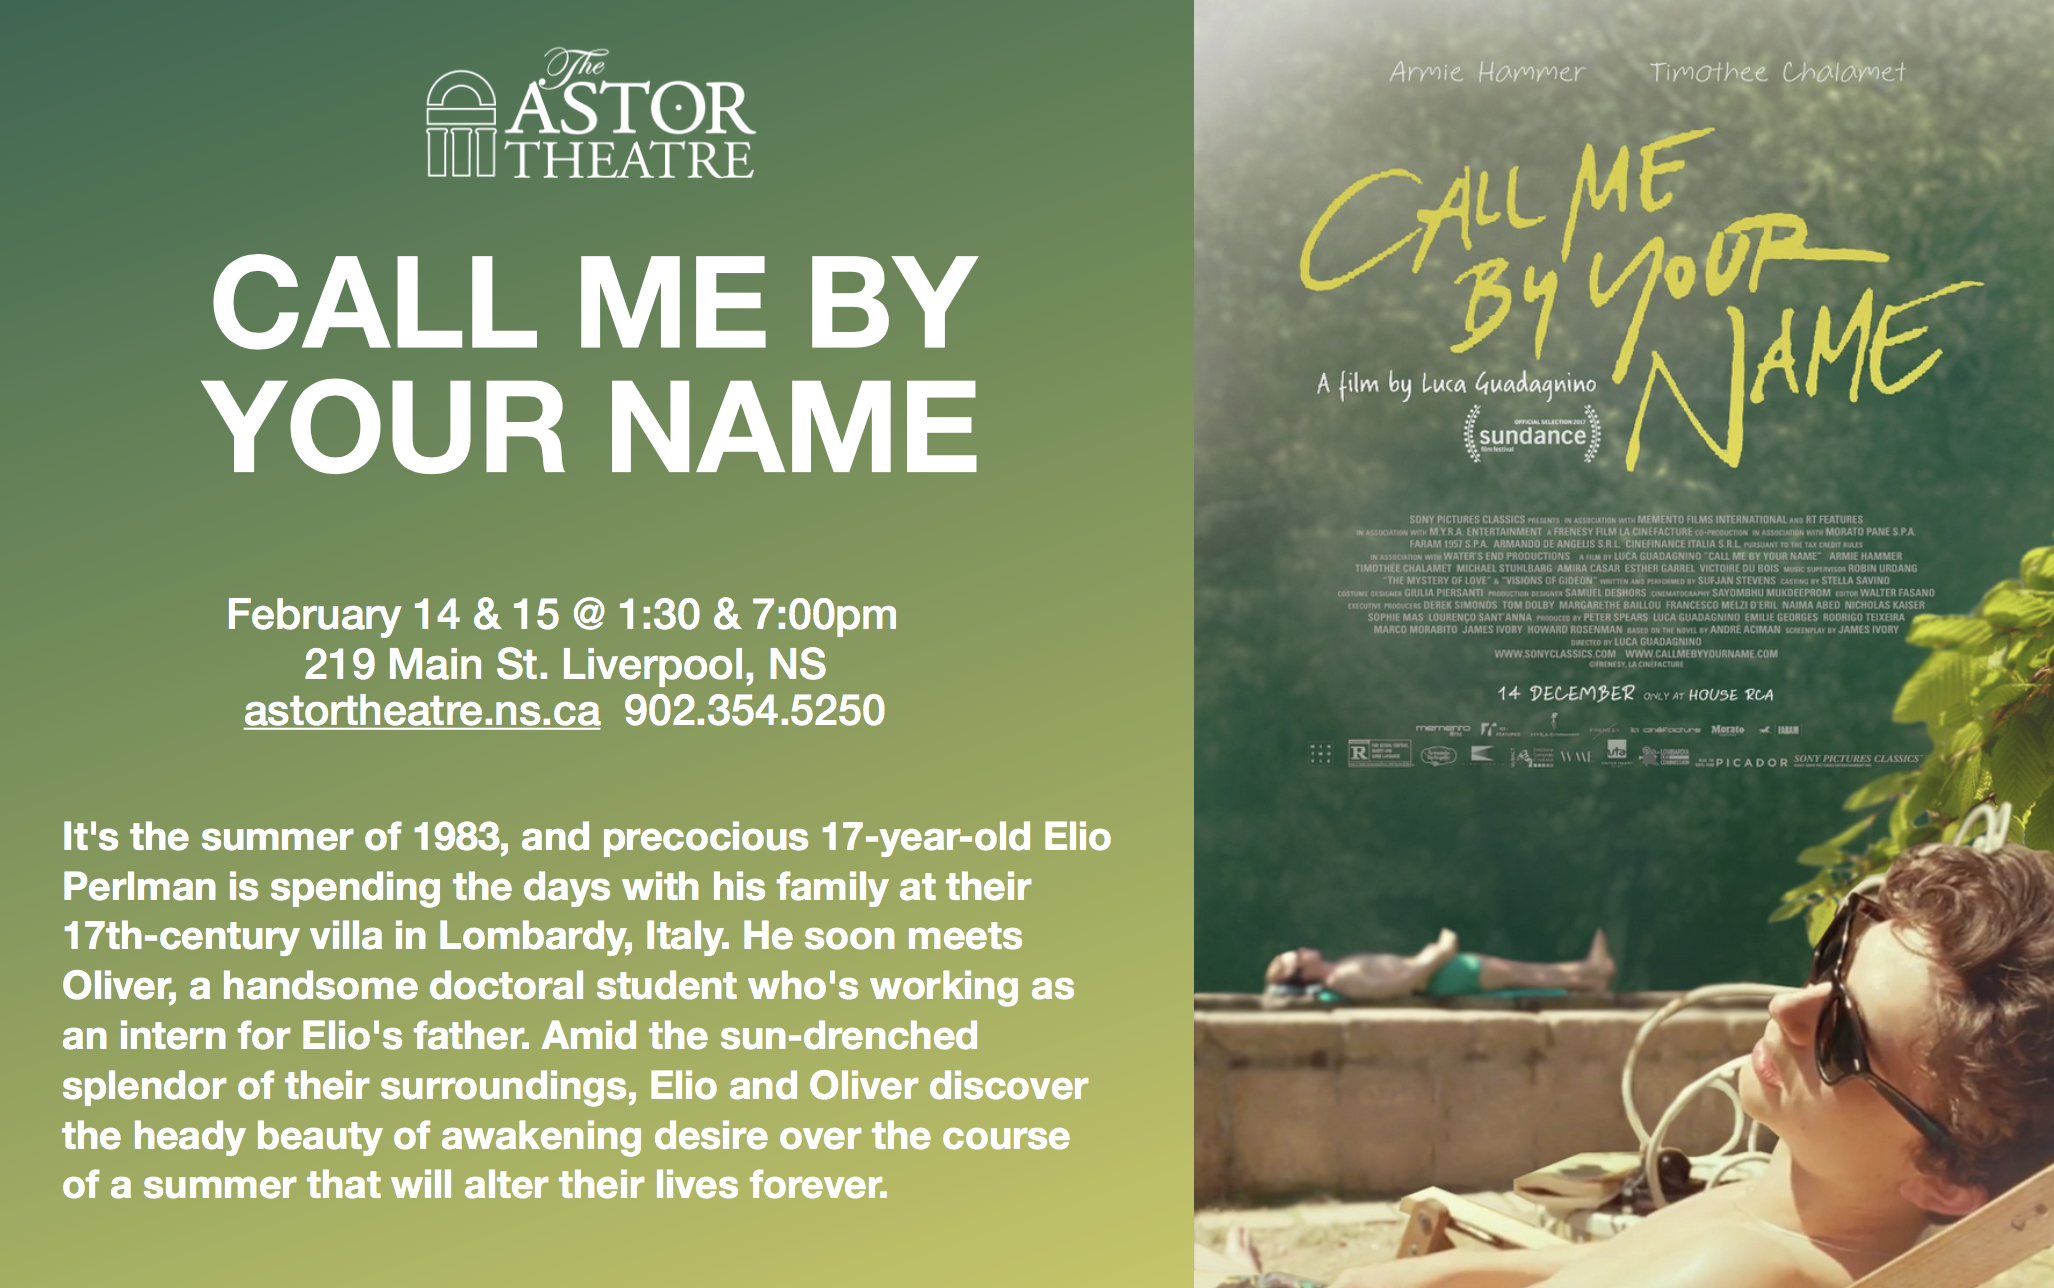 Astor Theatre Call Me By Your Name 130 700pm